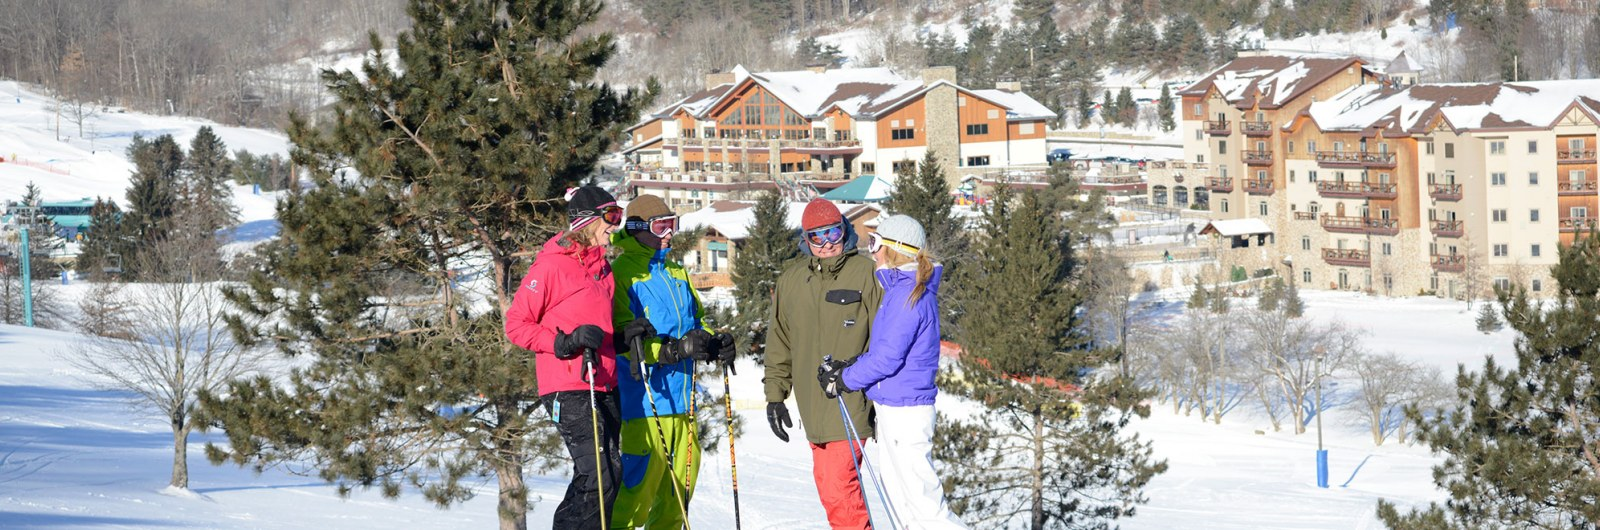 Two ski couples talking on the slope near the hotel by the ski mountain